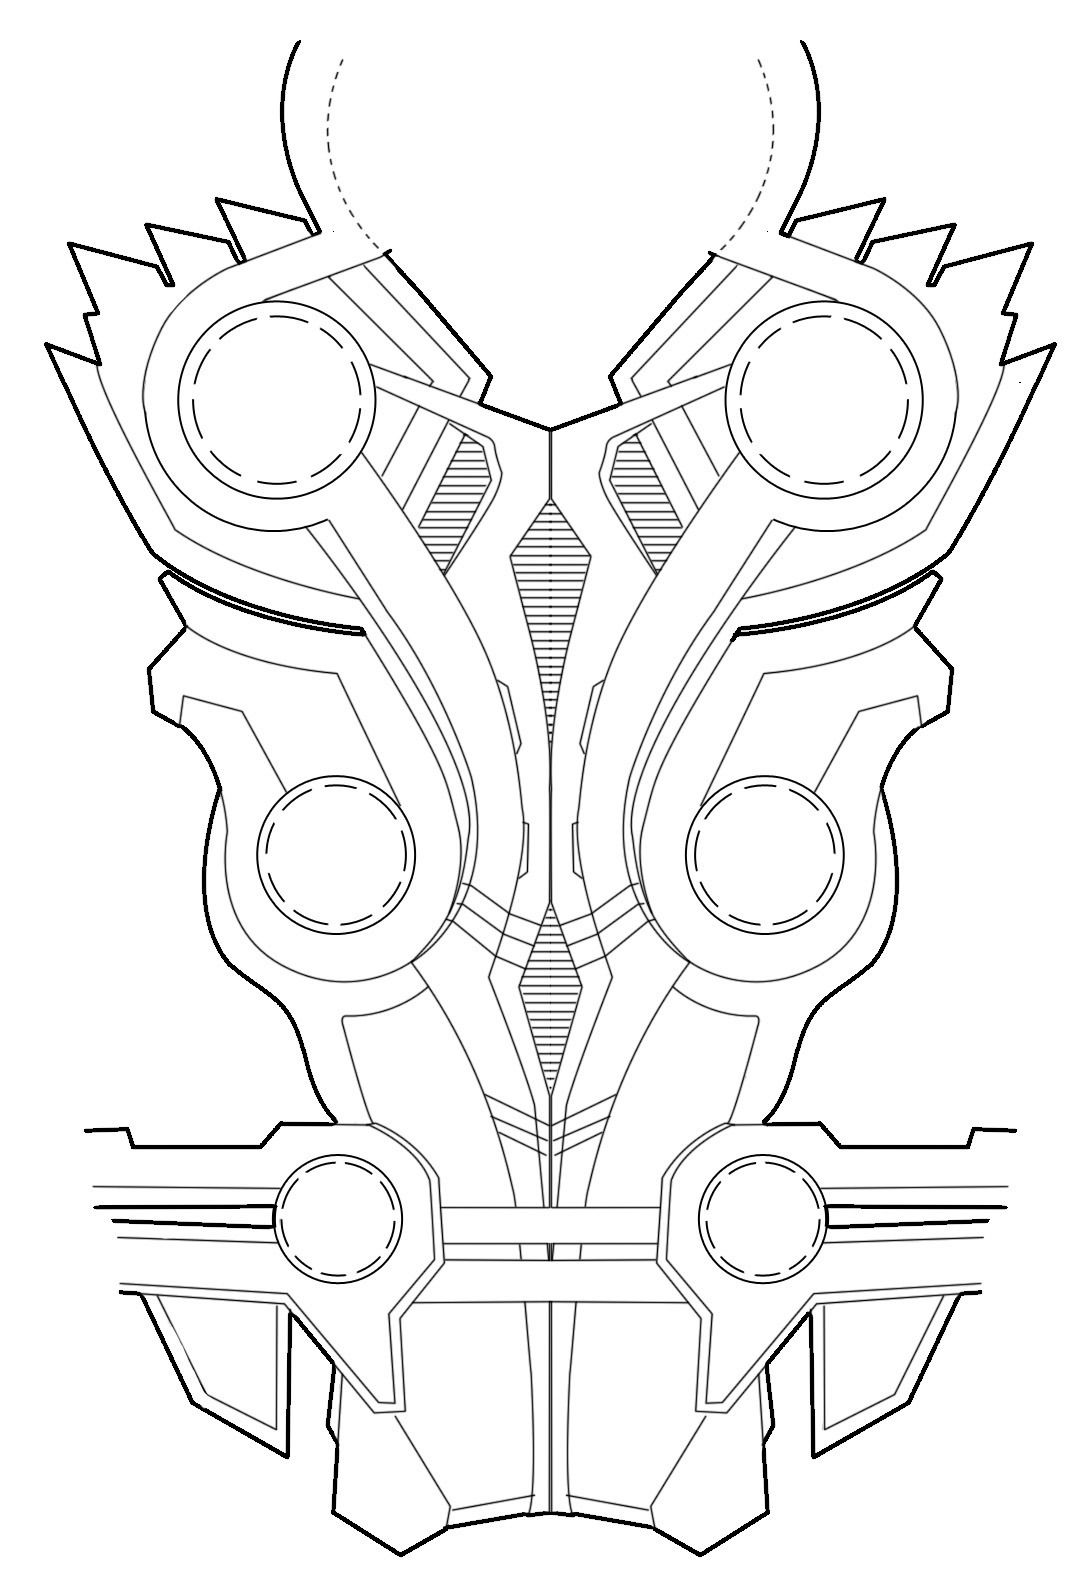 Thors Chest Armor Diagram For Rules Thor Cosplay Feel Free To Use It For Your Cosplay Just Link Back Here So Other People Can Use It Too October